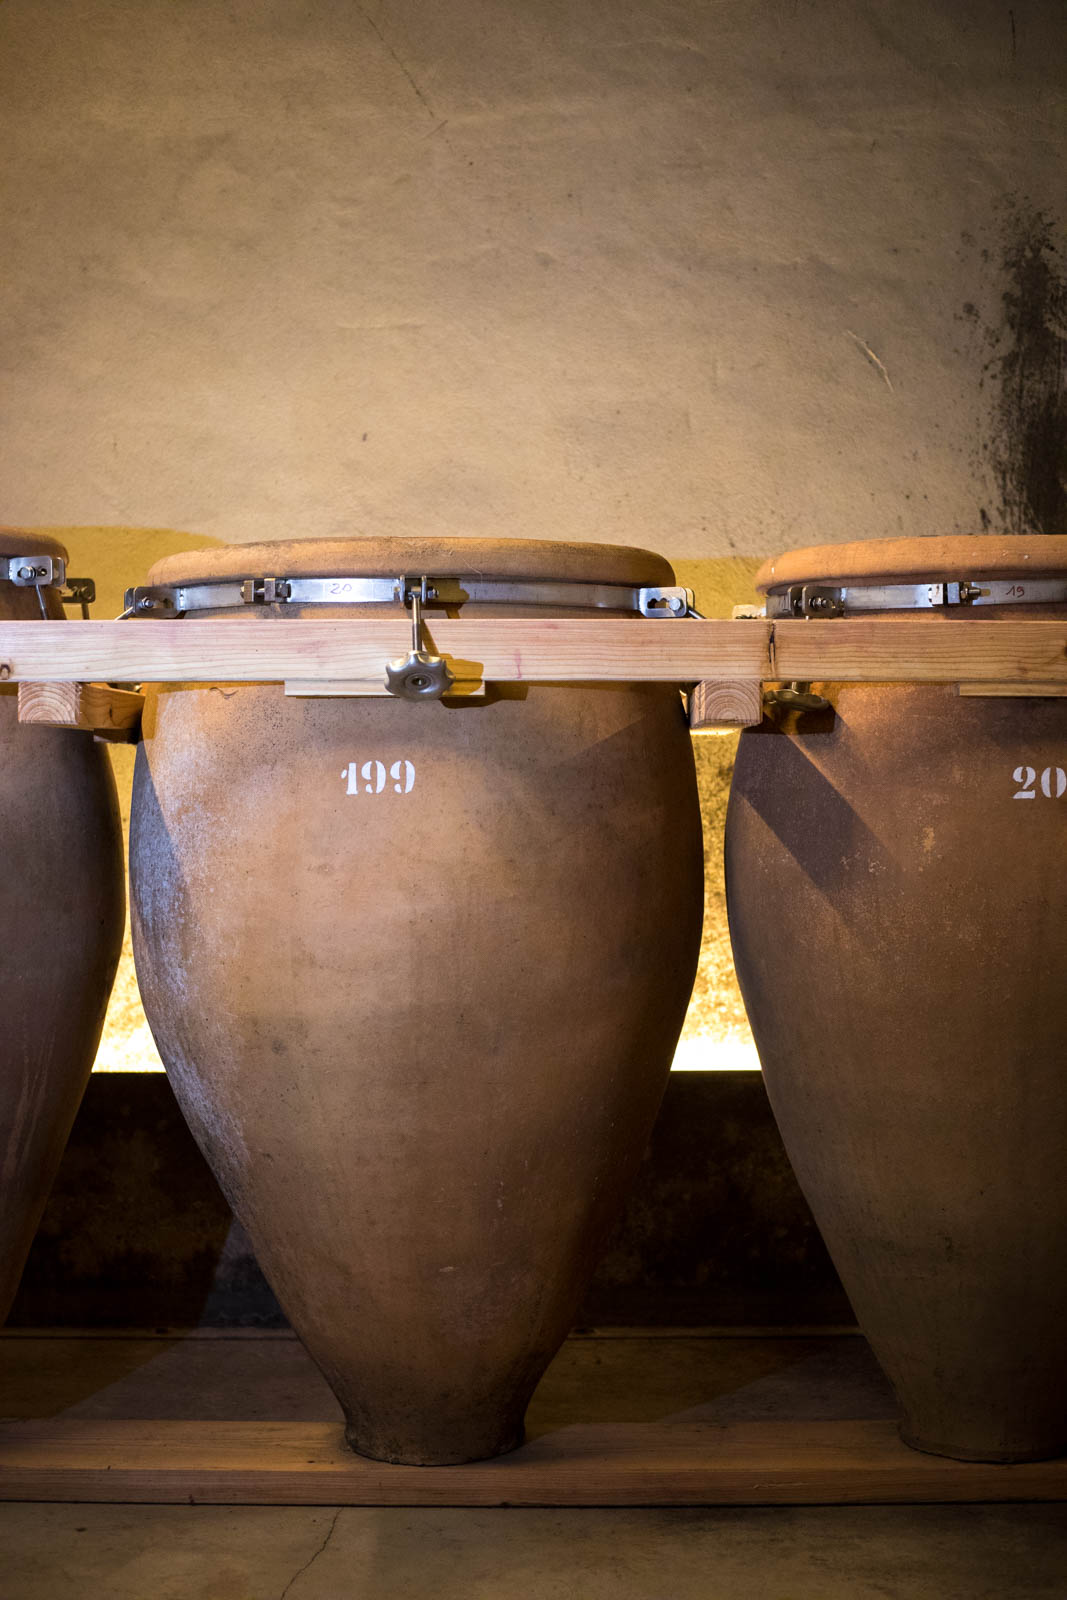 In the cellar at Foradori, amphora await the 2019 vintage. ©Kevin Day/Opening a Bottle